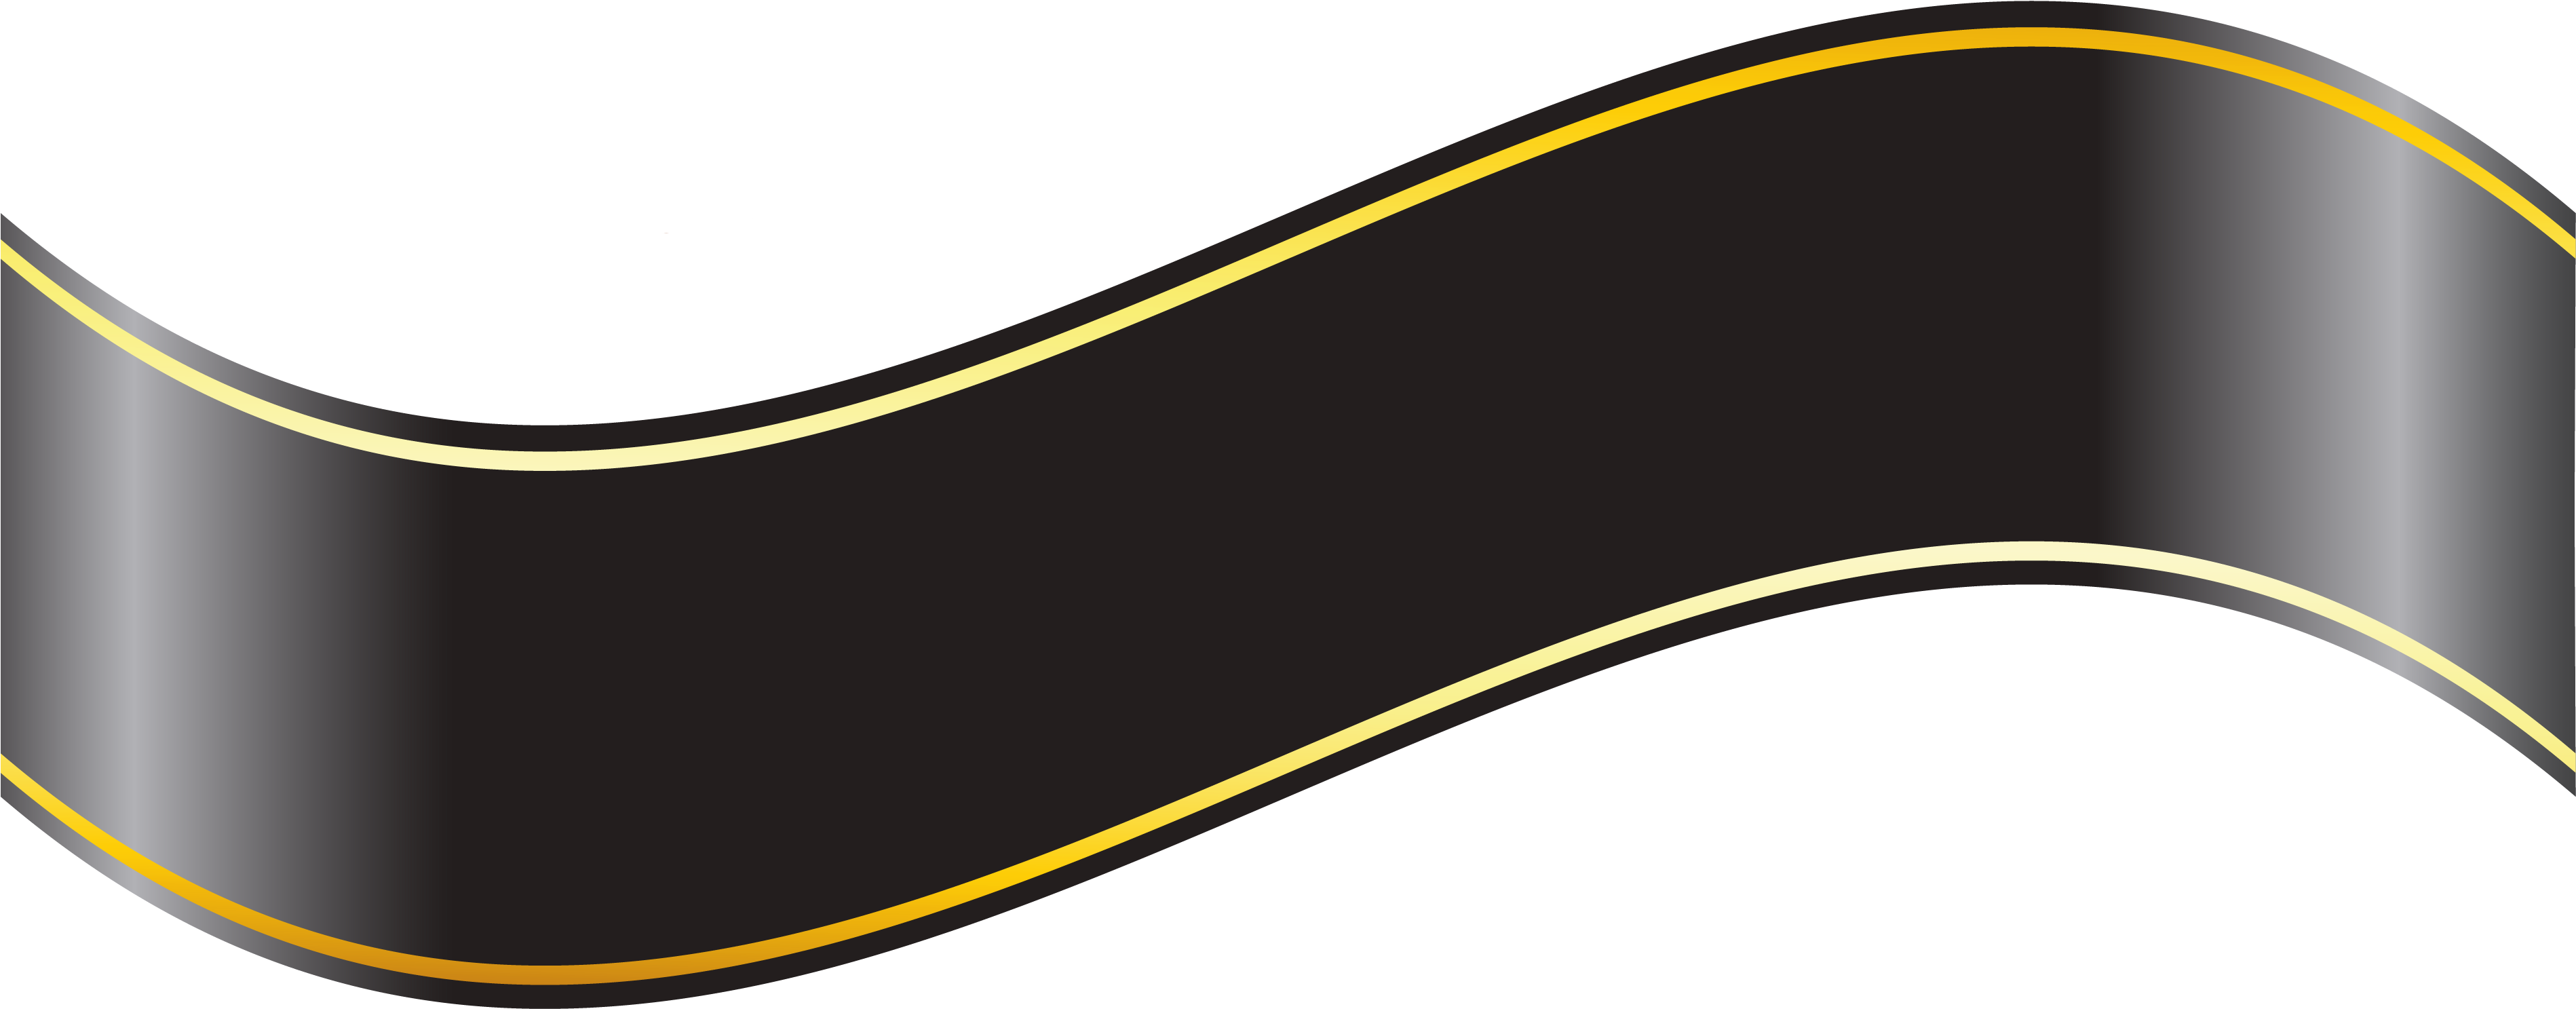 Black And Gold Ribbon Png Free Black And Gold Ribbon Png Transparent Images 107315 Pngio